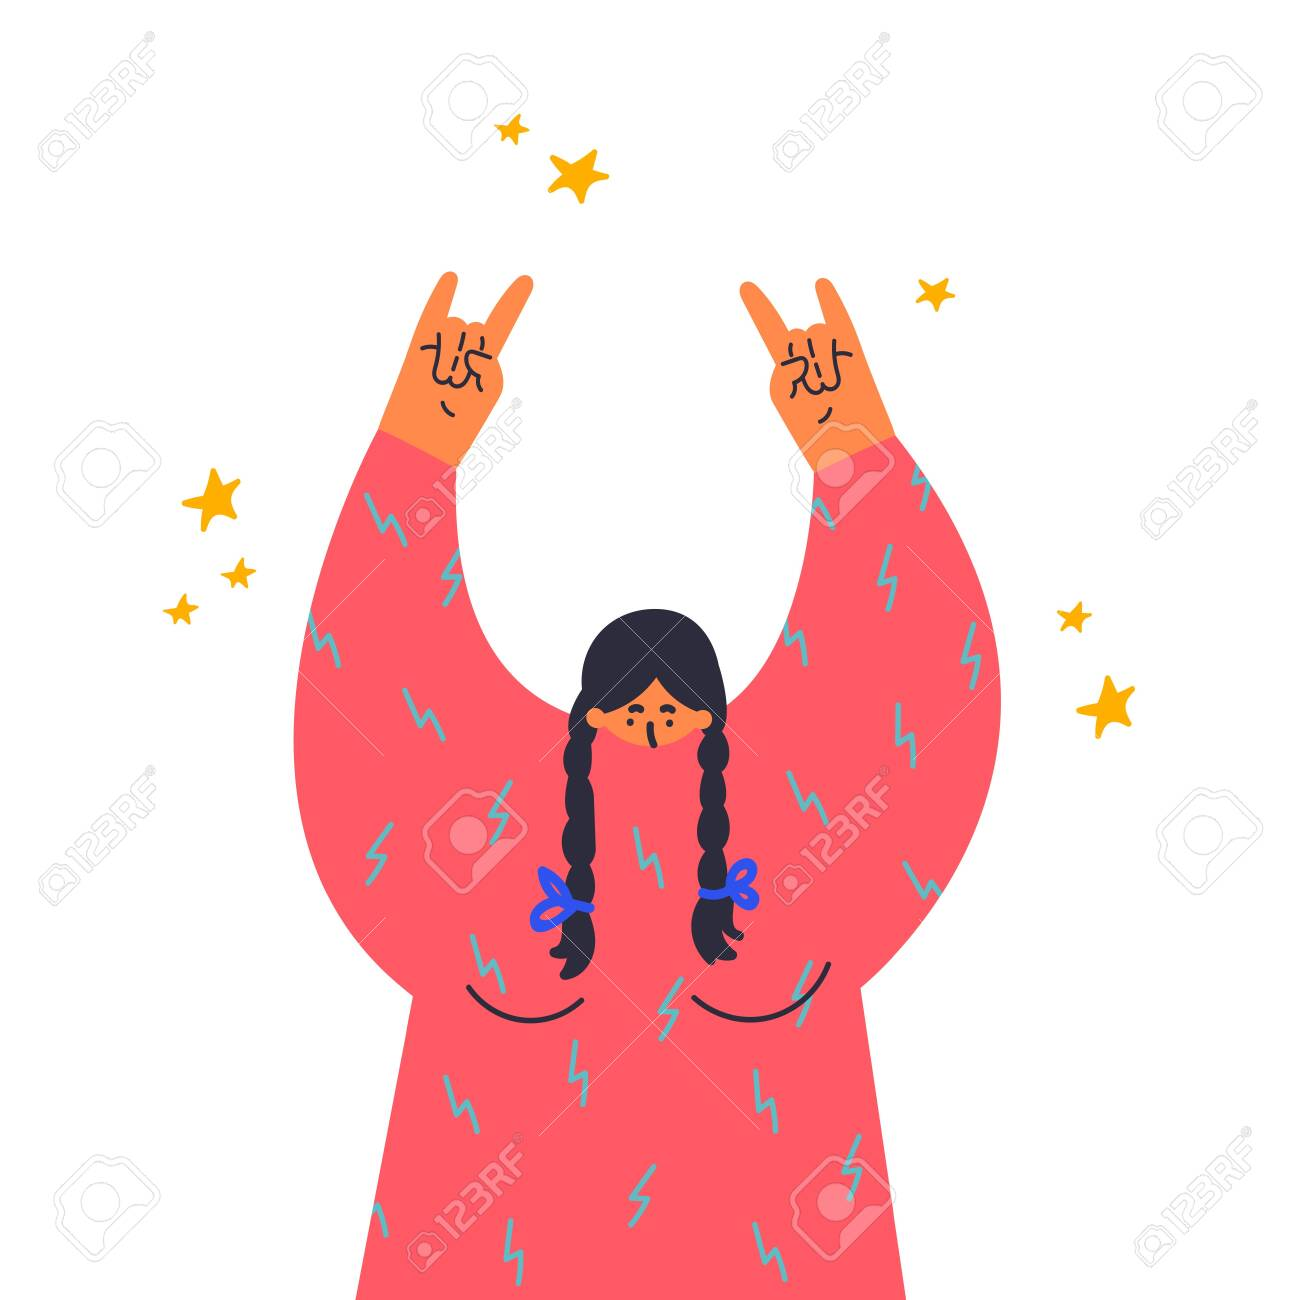 Woman makes the rock gesture, goat fingers up.Fingers up, hand sign.Gesture language.Flat vector illustration.Girl at a rock concert.Template design.Colorful cartoon characters. - 137535011